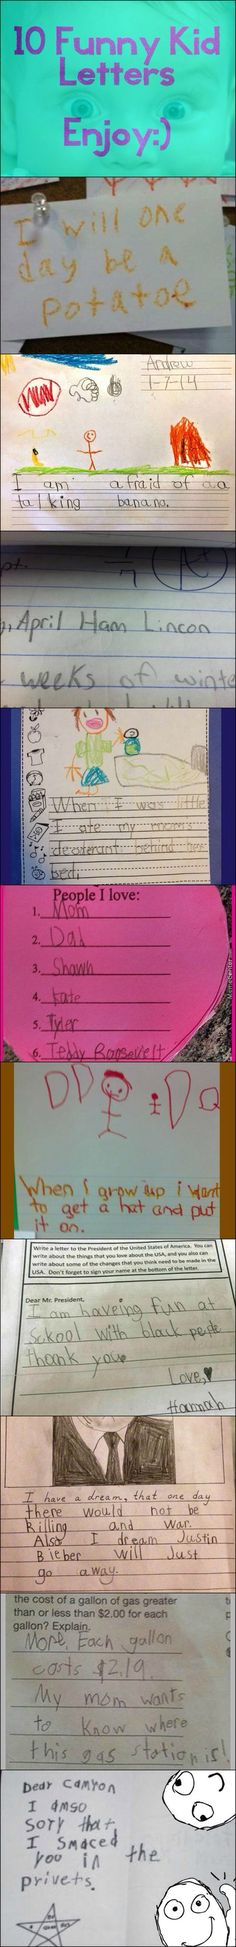 10 letters from little kids. Funny!